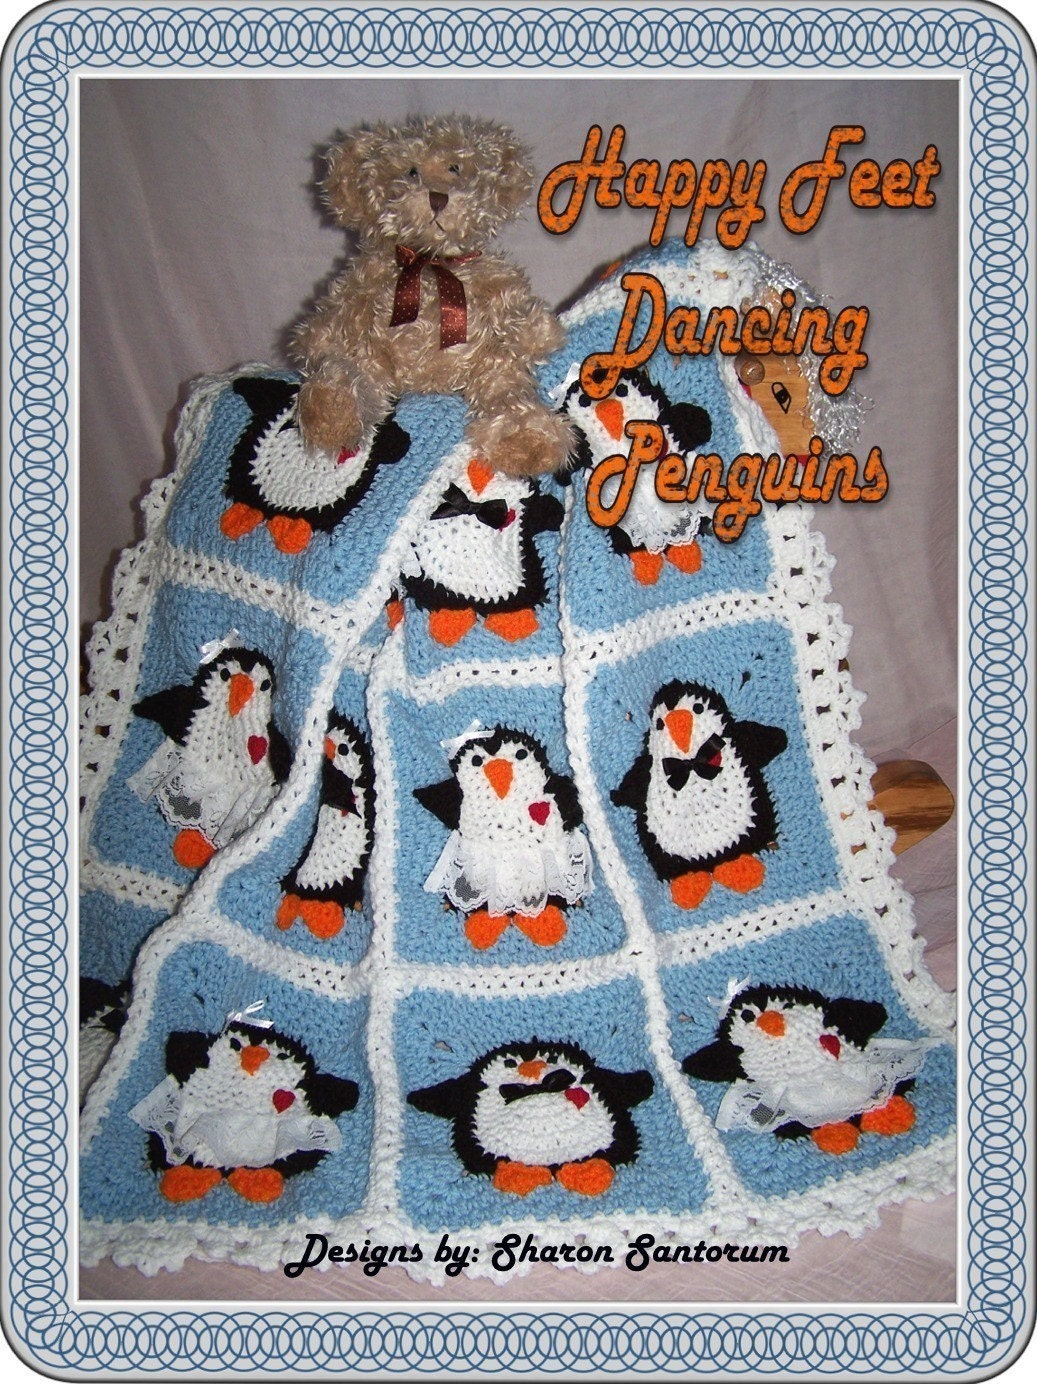 Free Crochet Pattern Penguin Afghan : Dancing Penguins Crochet Baby Afghan or Blanket by ...